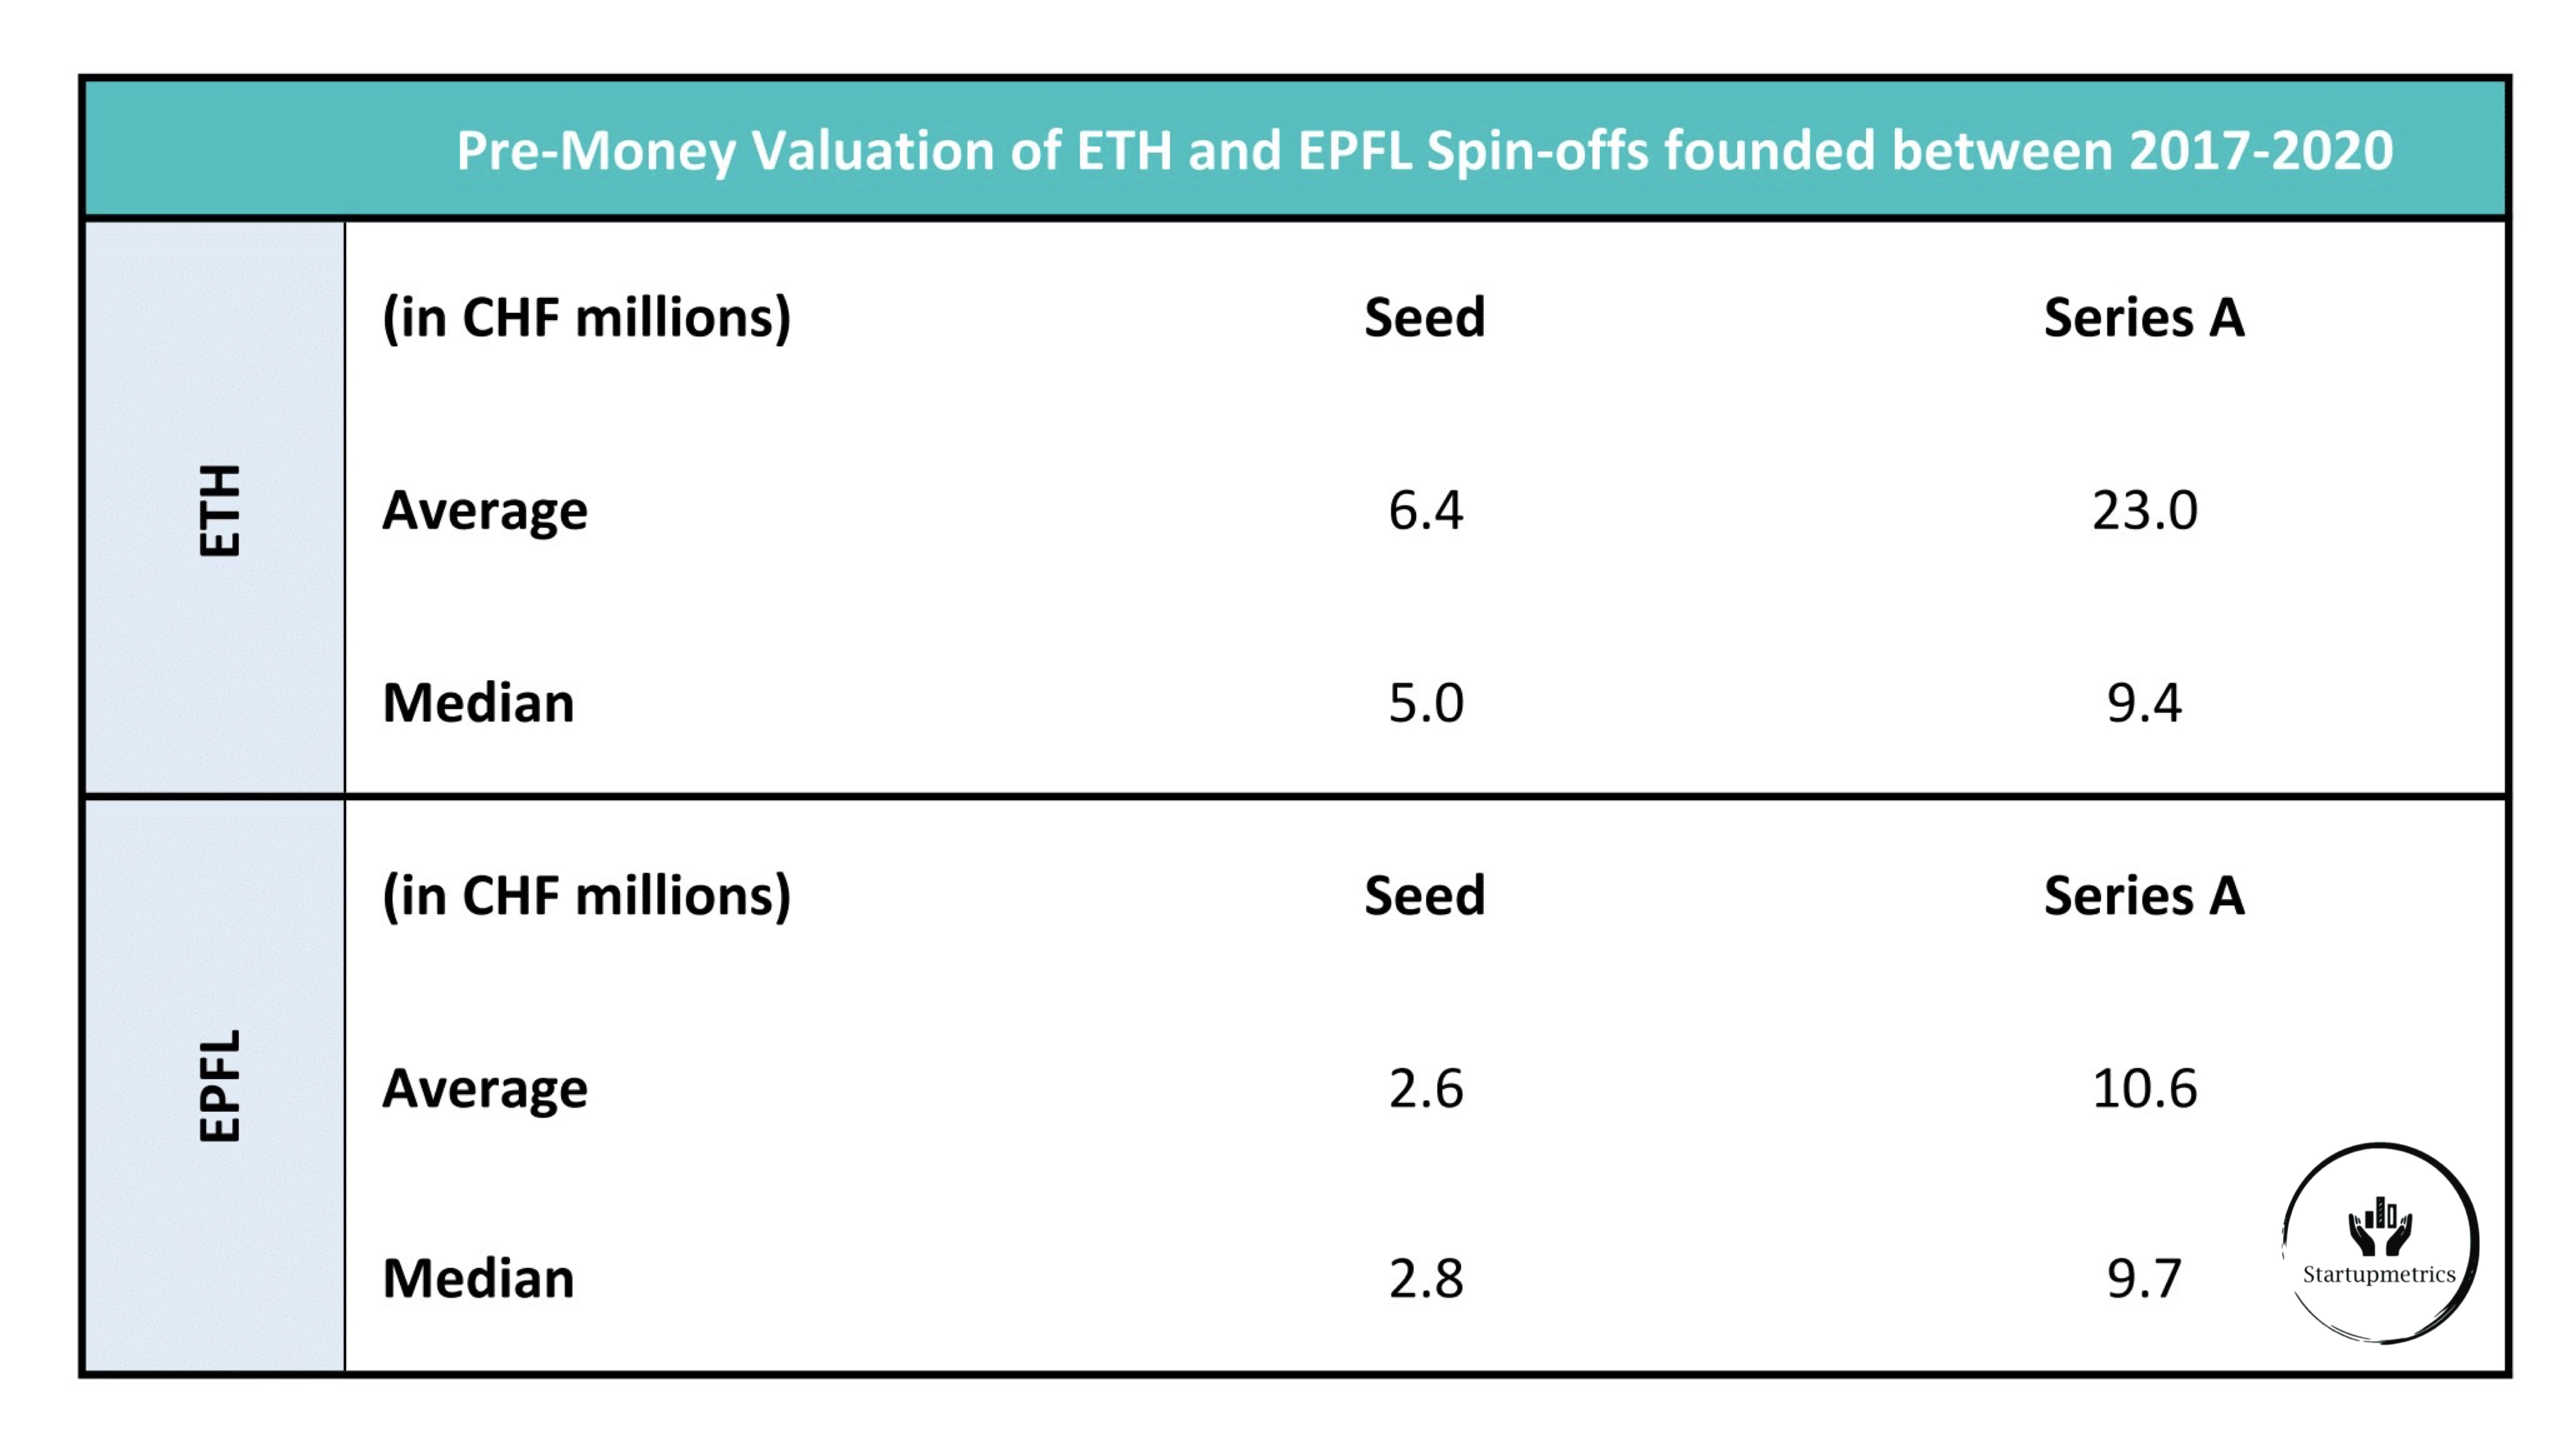 Pre-money Valuation of ETH and EPFL Spin-offs founded between 2017-2020